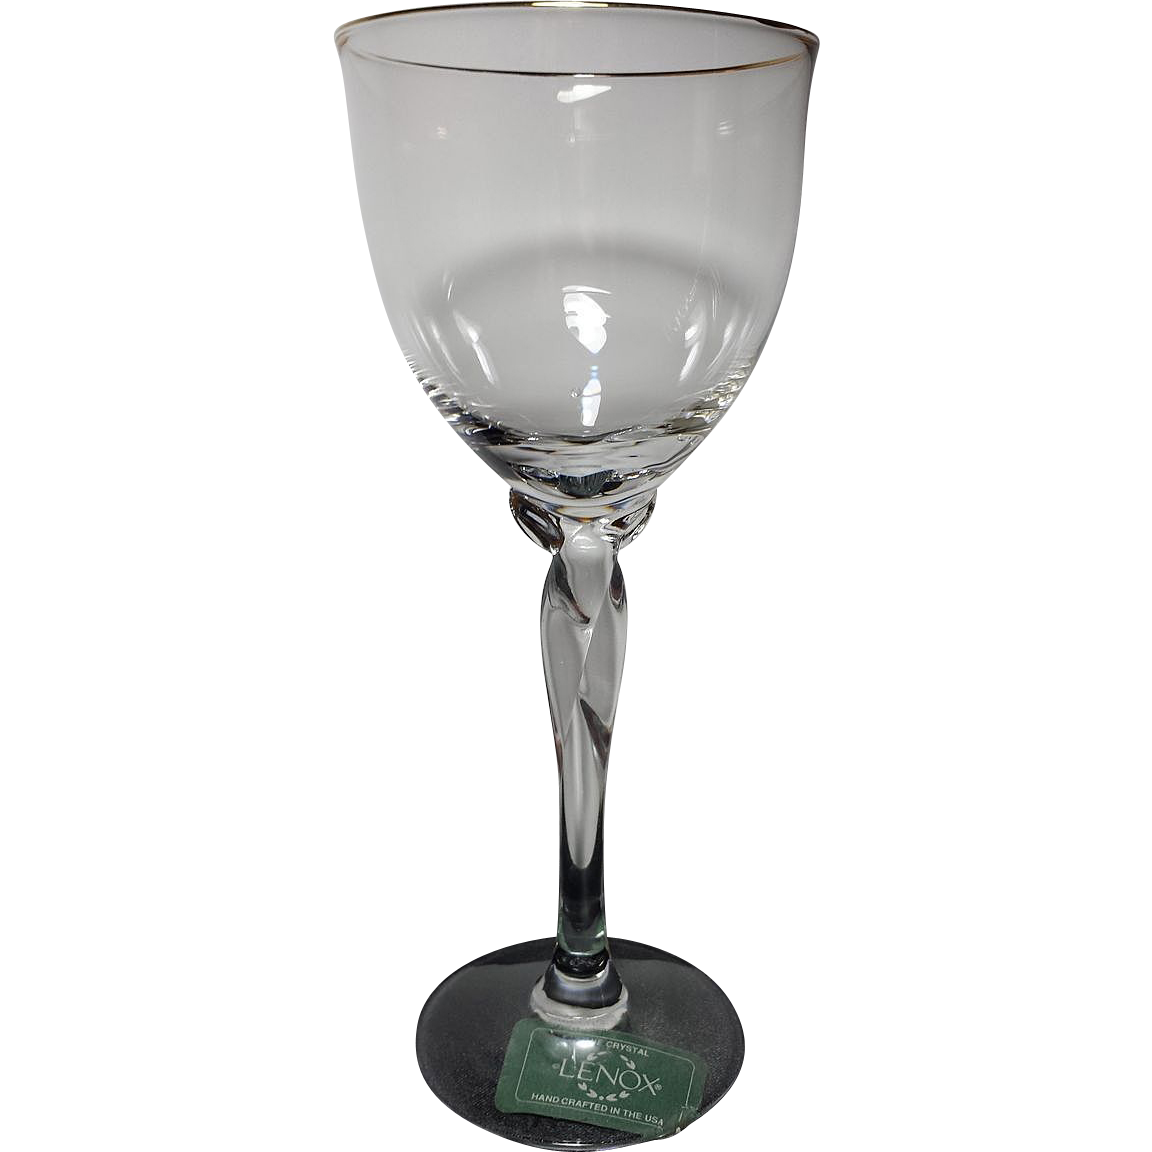 Lenox Crystal Unity Wine Glass With Gold Trim From Rubylane Sold On Ruby Lane